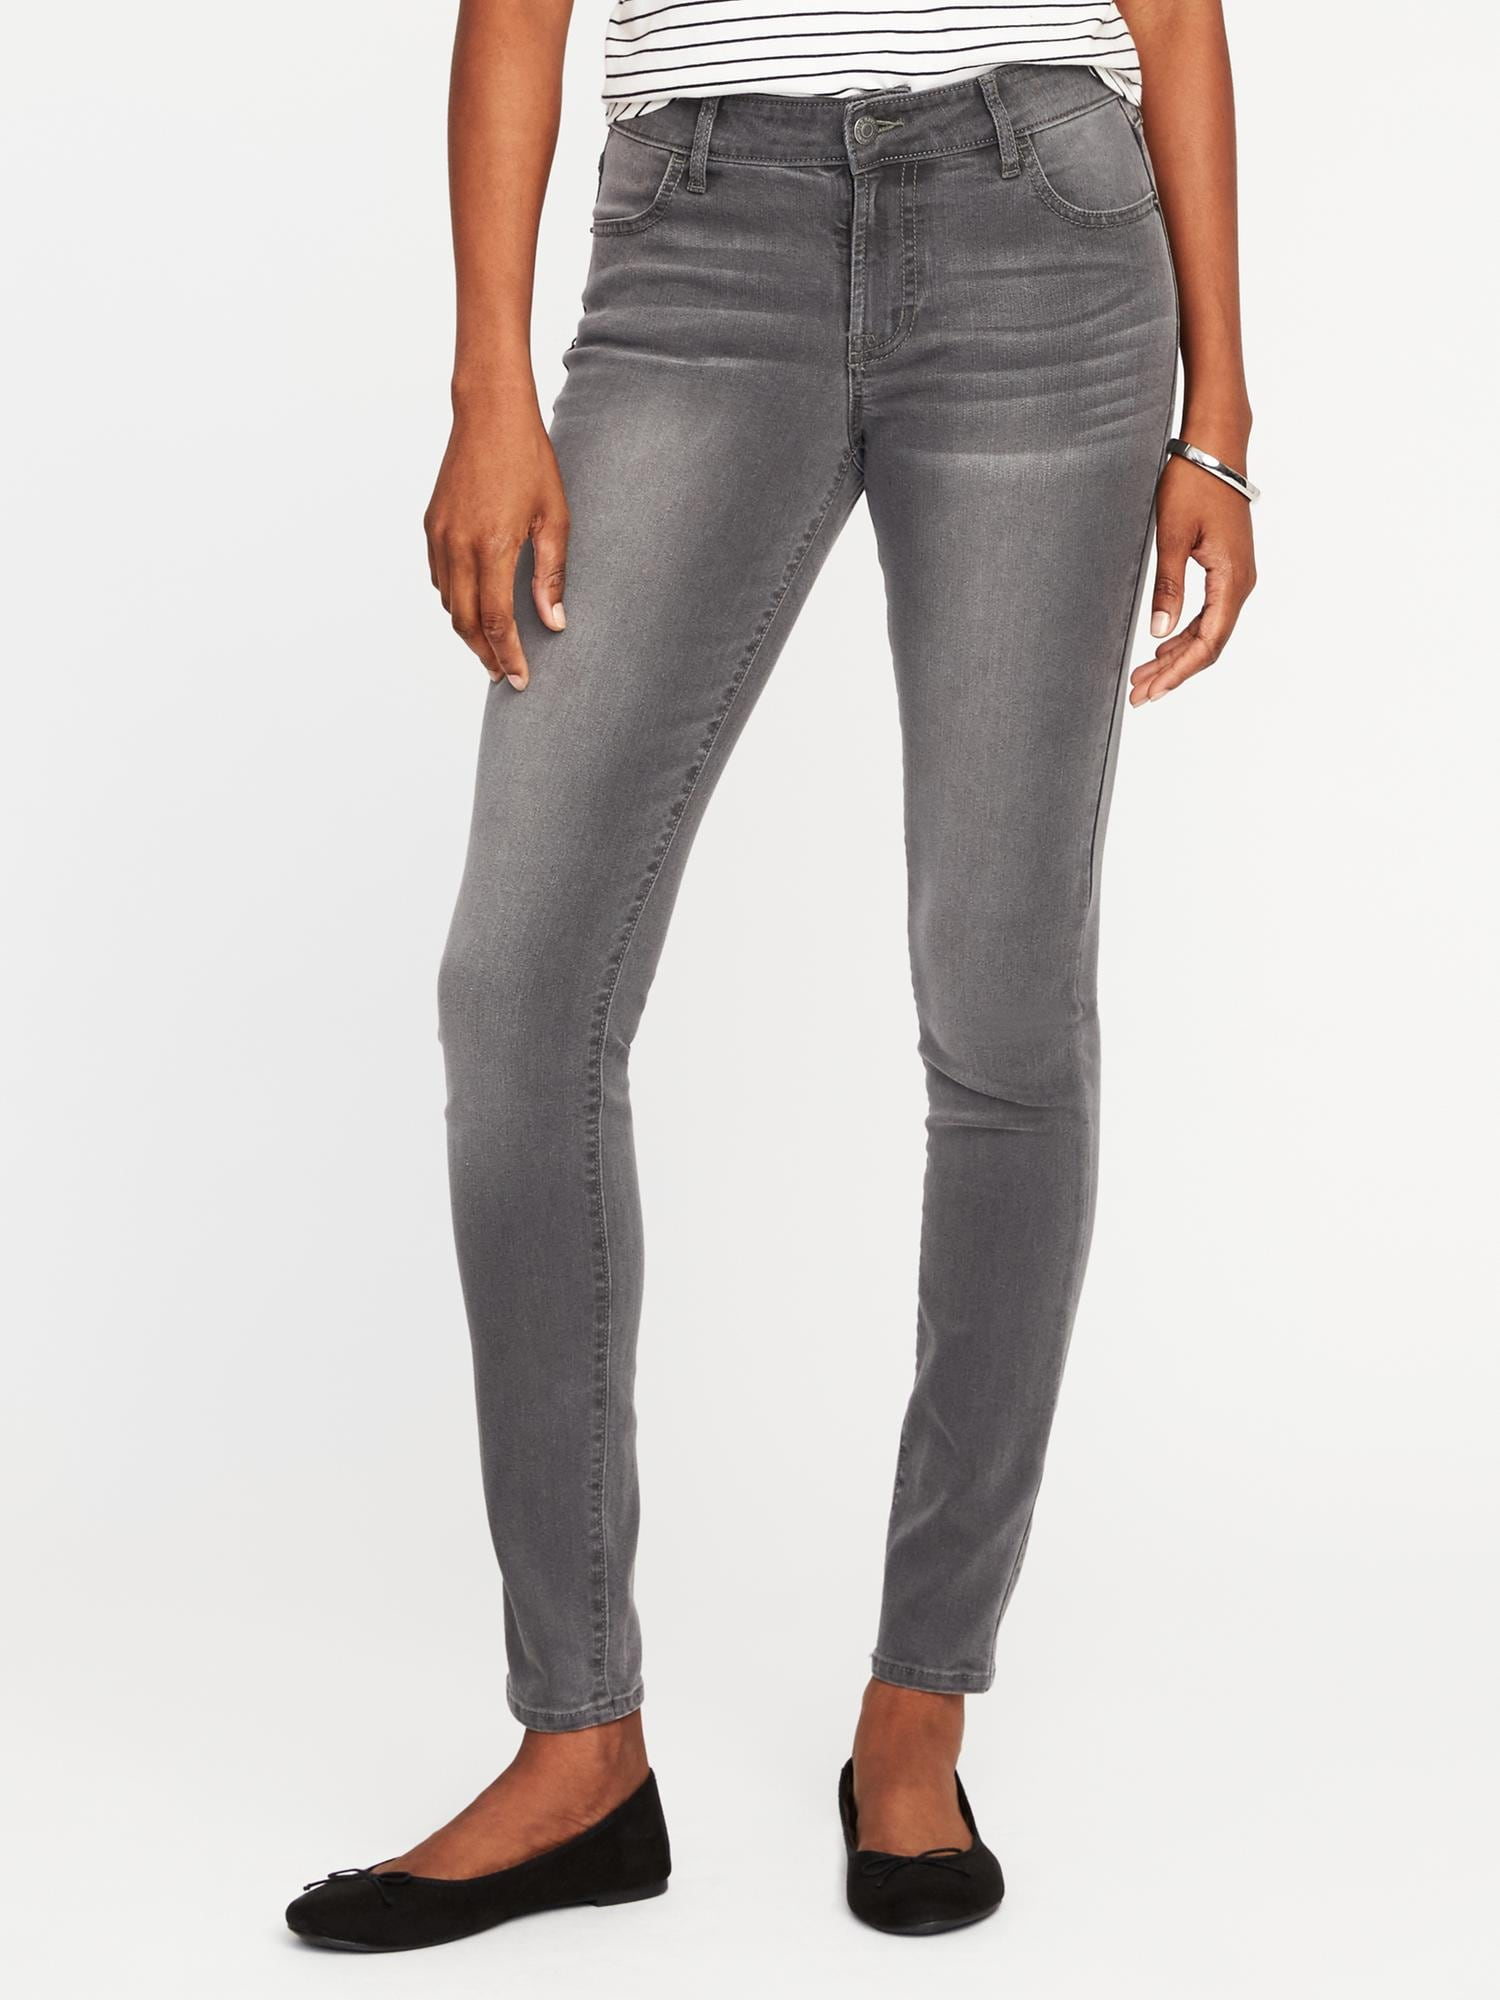 3ce584ad977f4 Mid-Rise Super Skinny Jeans for Women